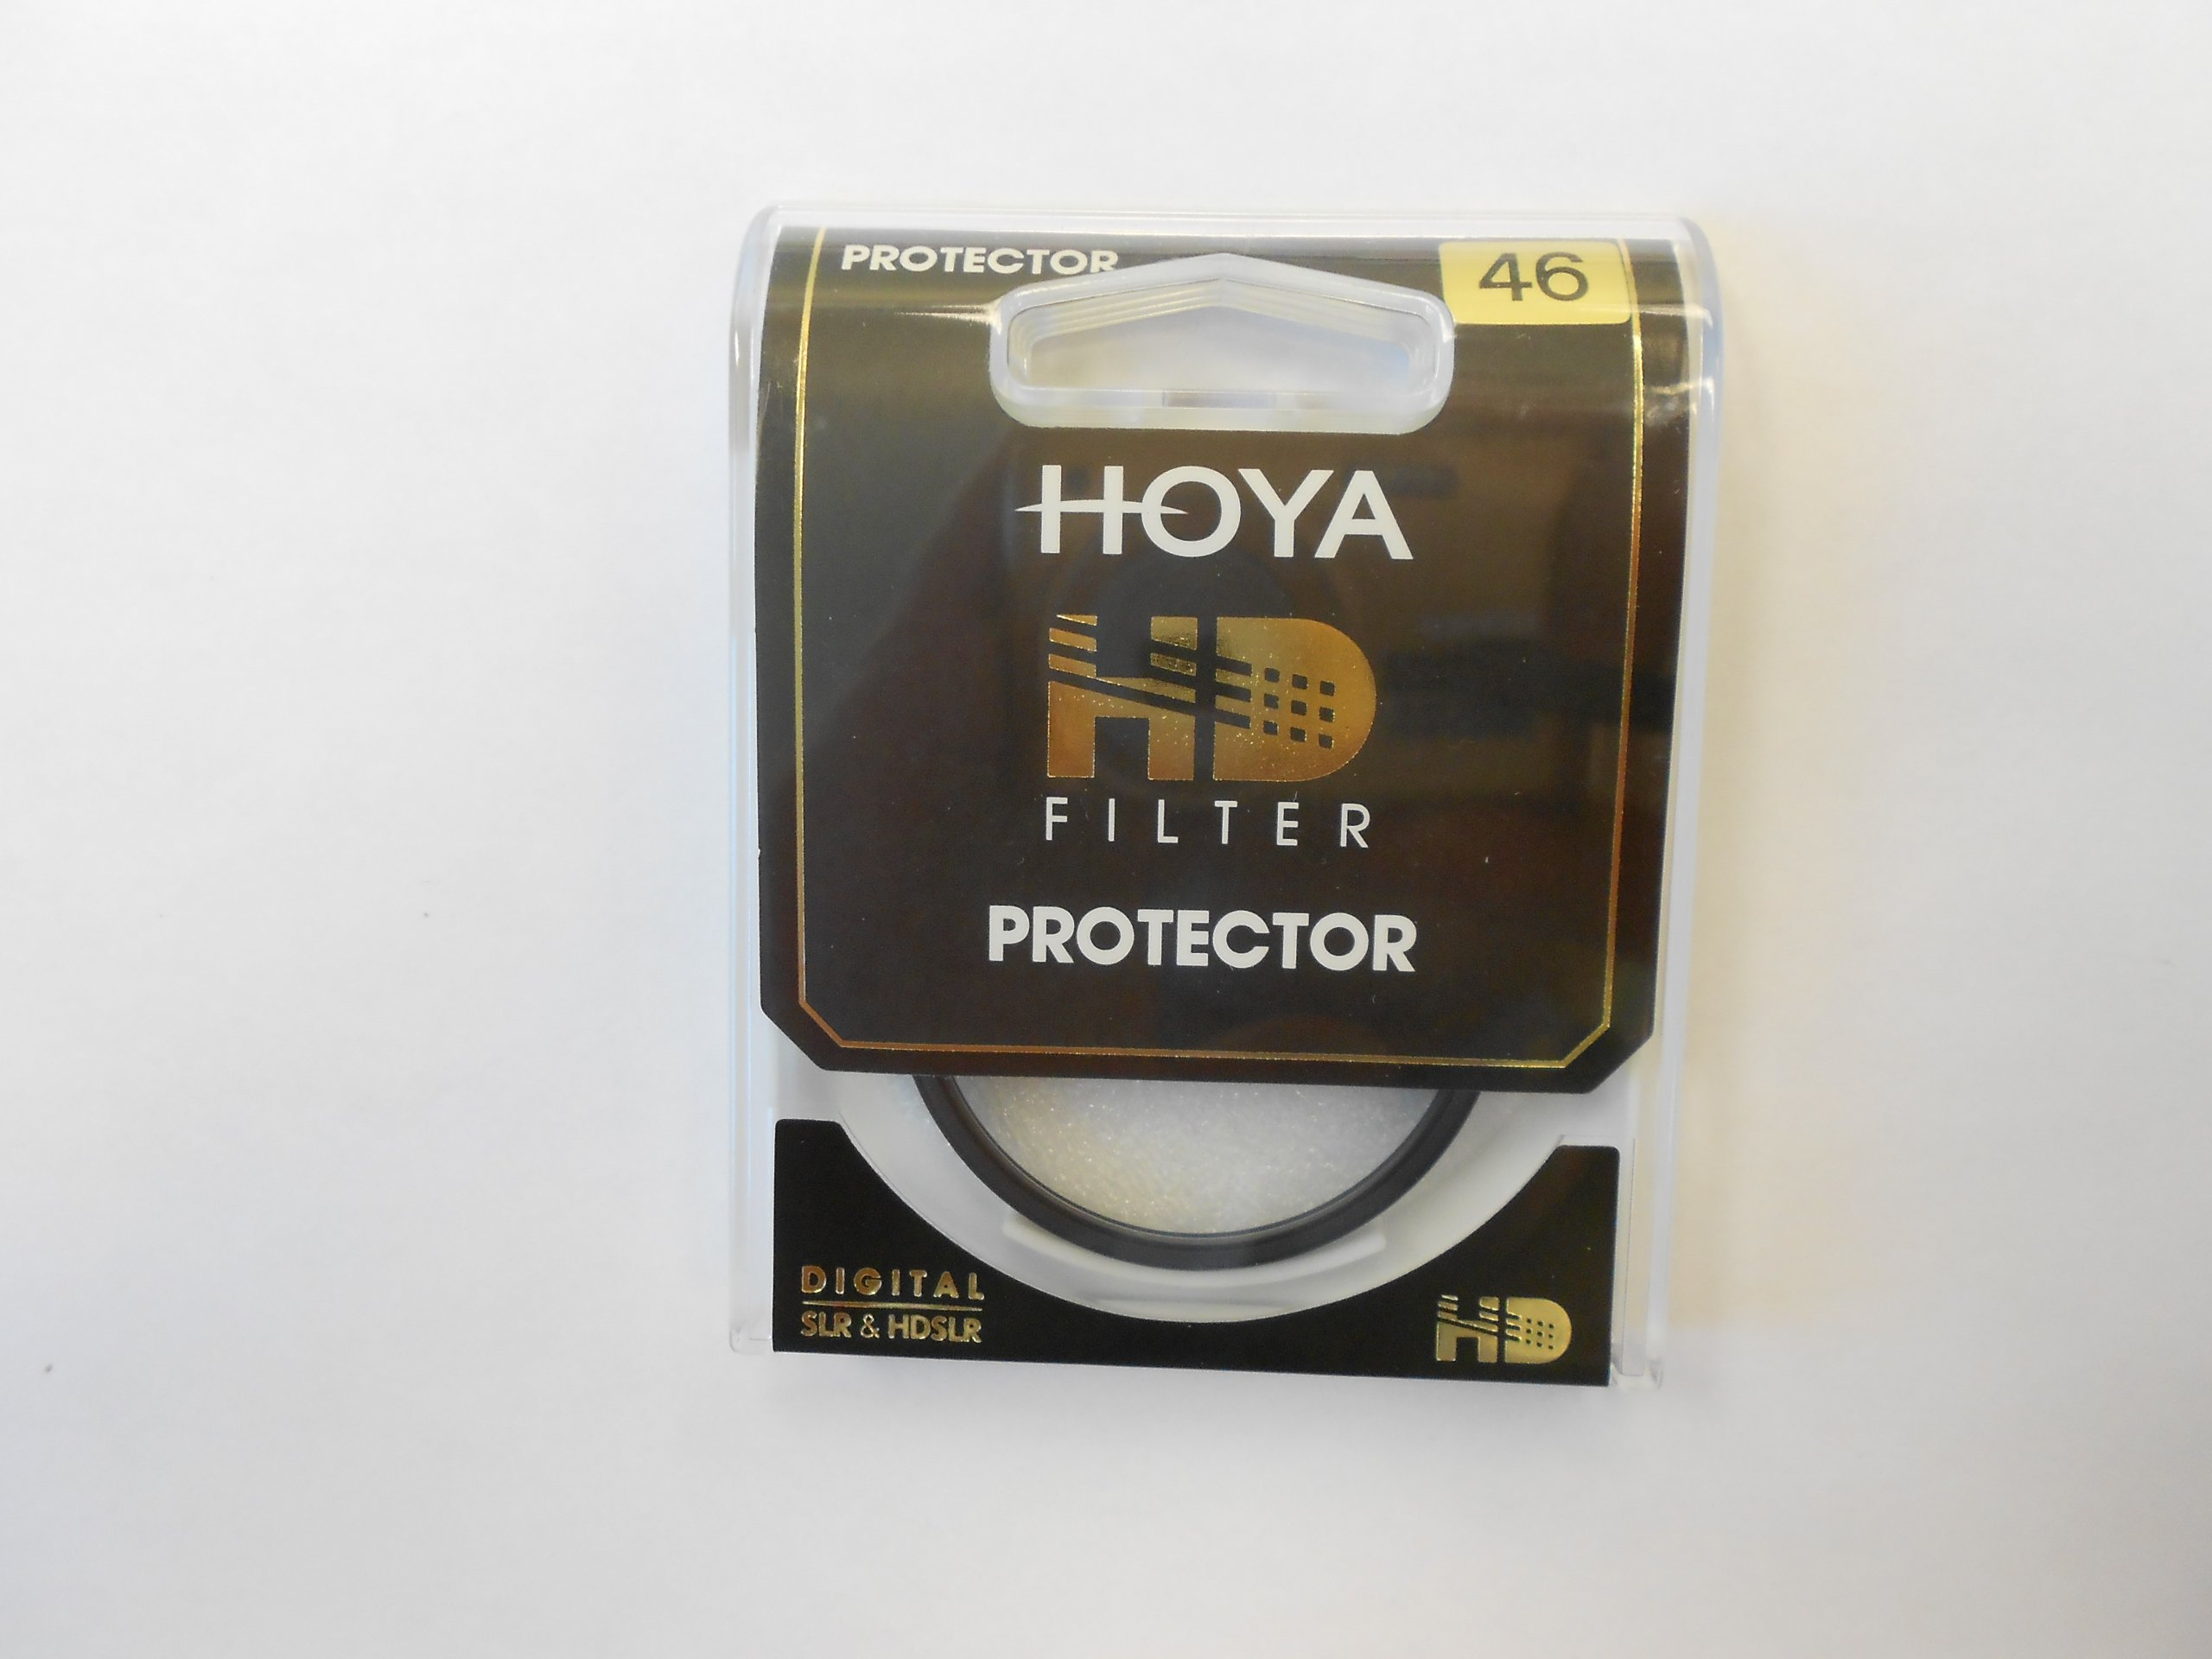 Hoya 46mm HD High Definition Protective Filter by Hoya